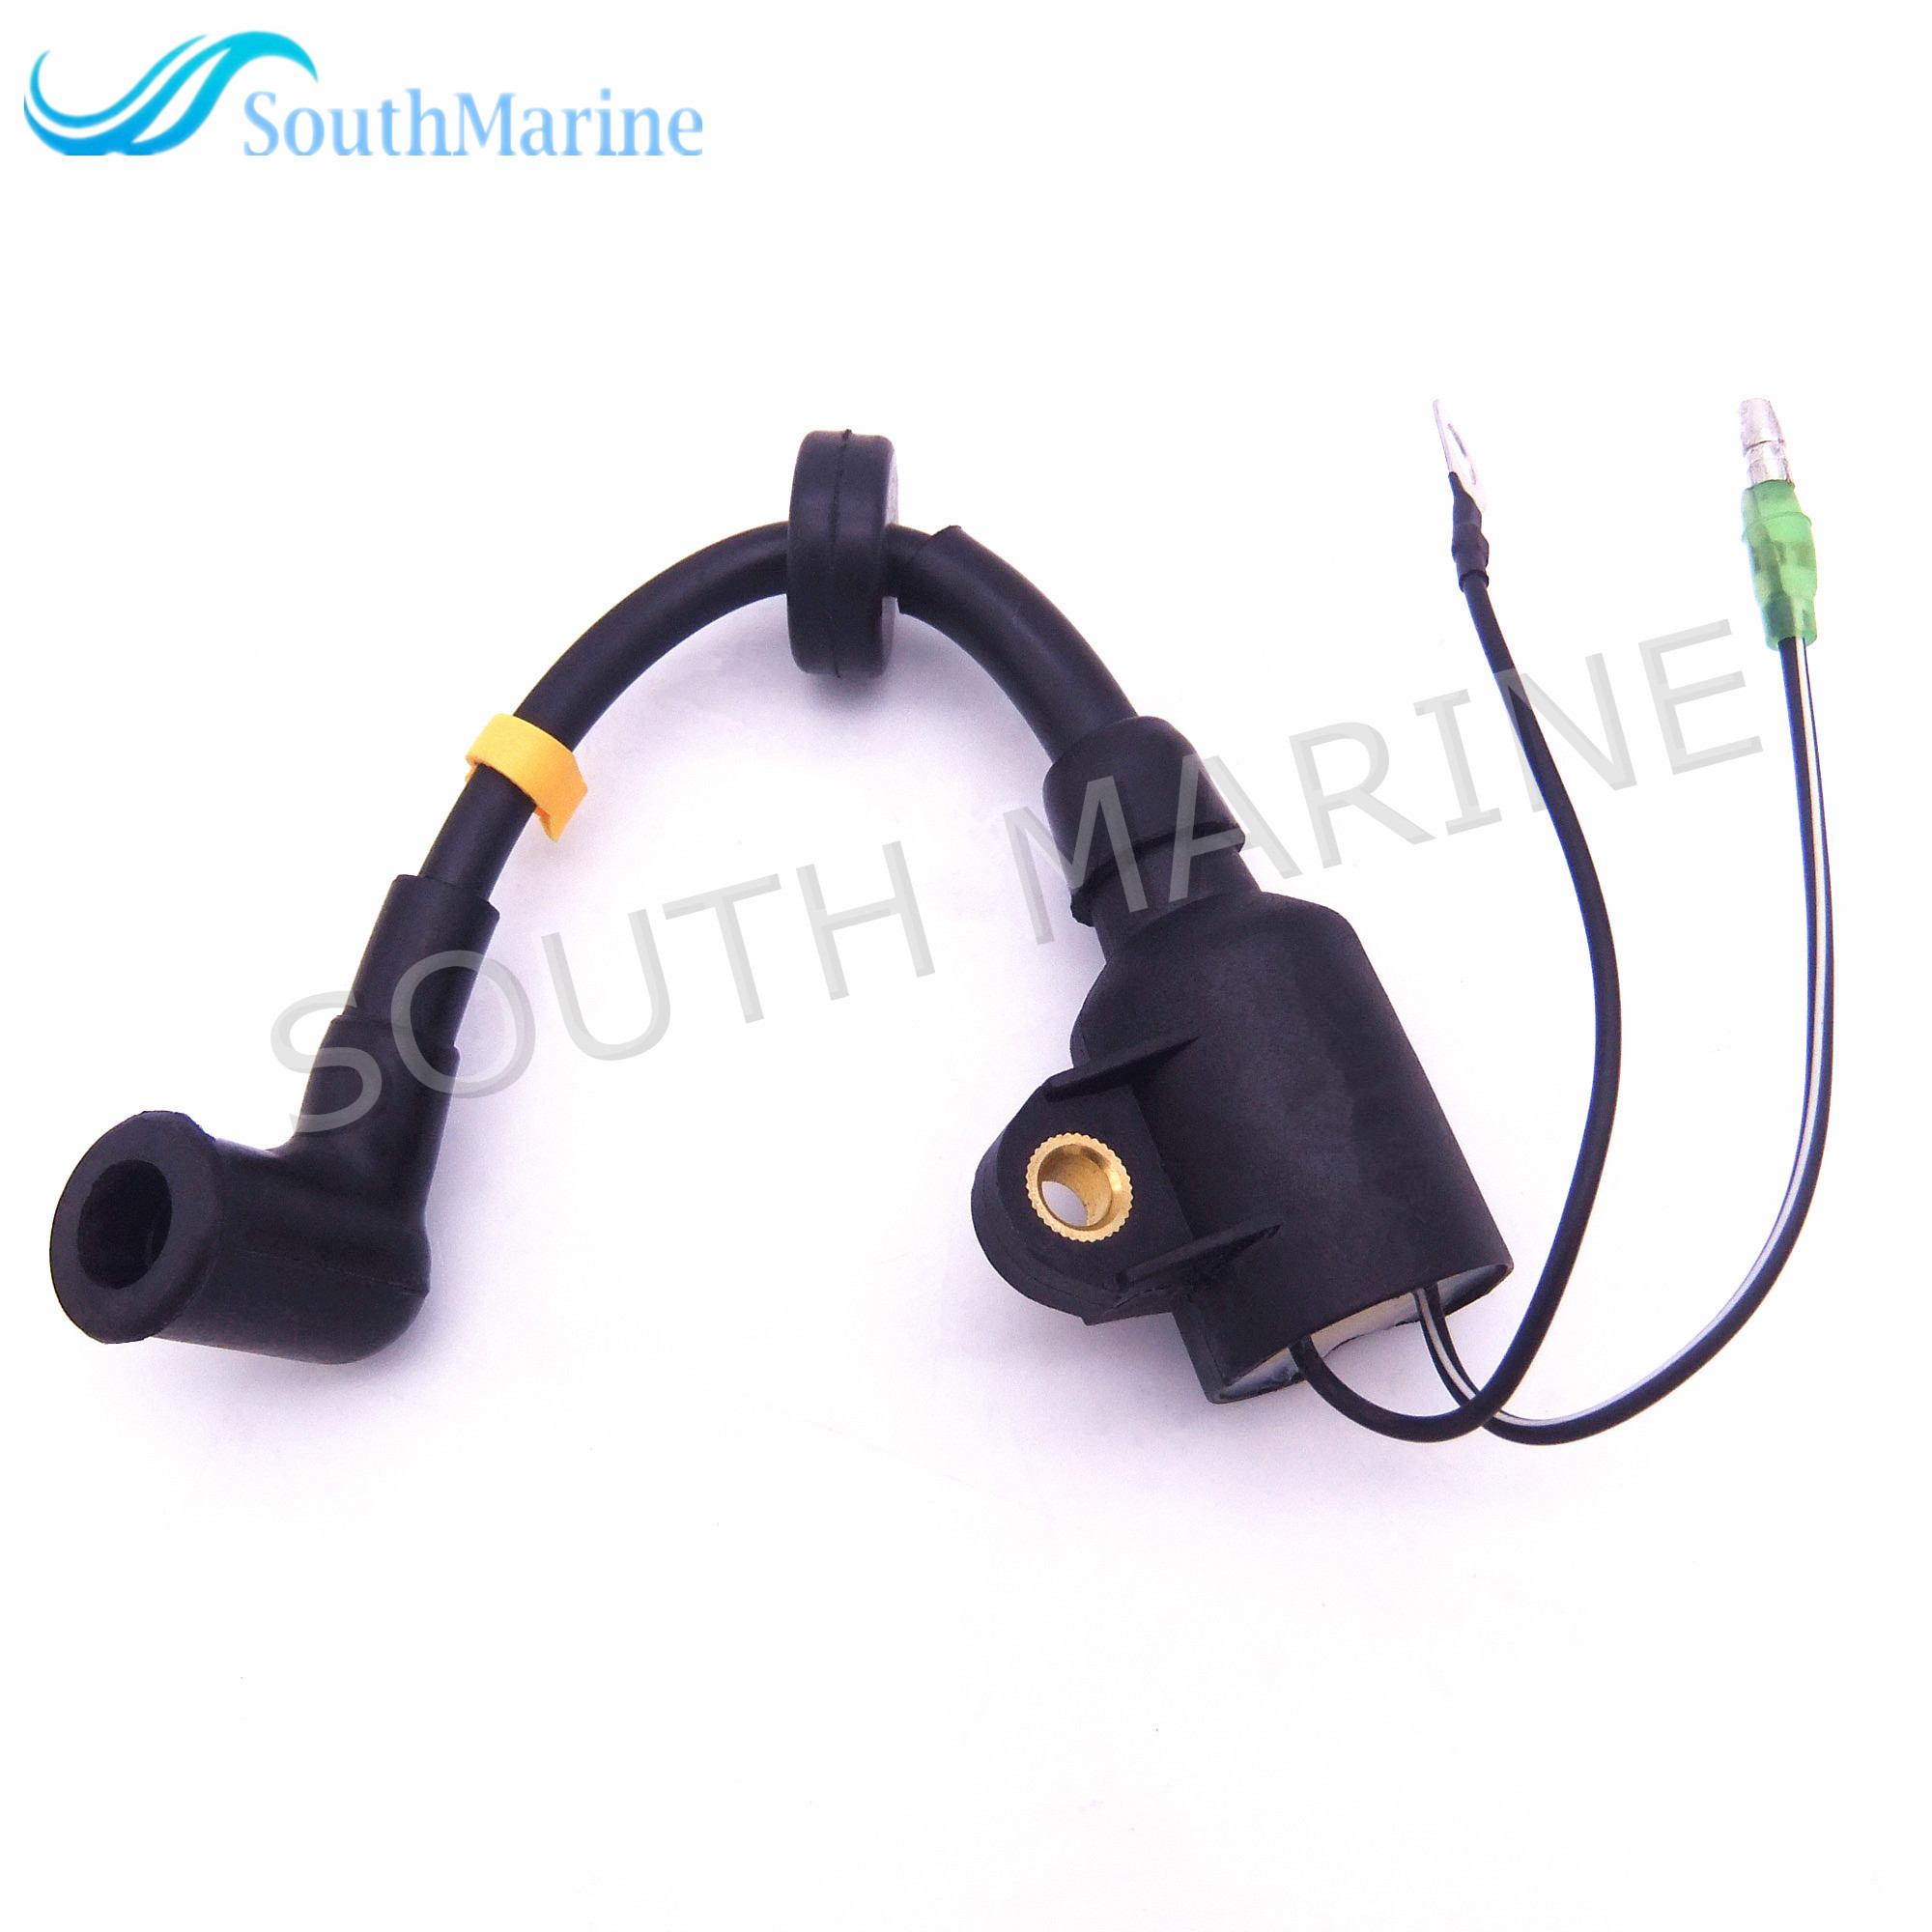 Outboard Engine High Pressure Assy T20-06030003 Ignition Coil B For Parsun HDX 2-Stroke T20 T25 T30A Boat Motor